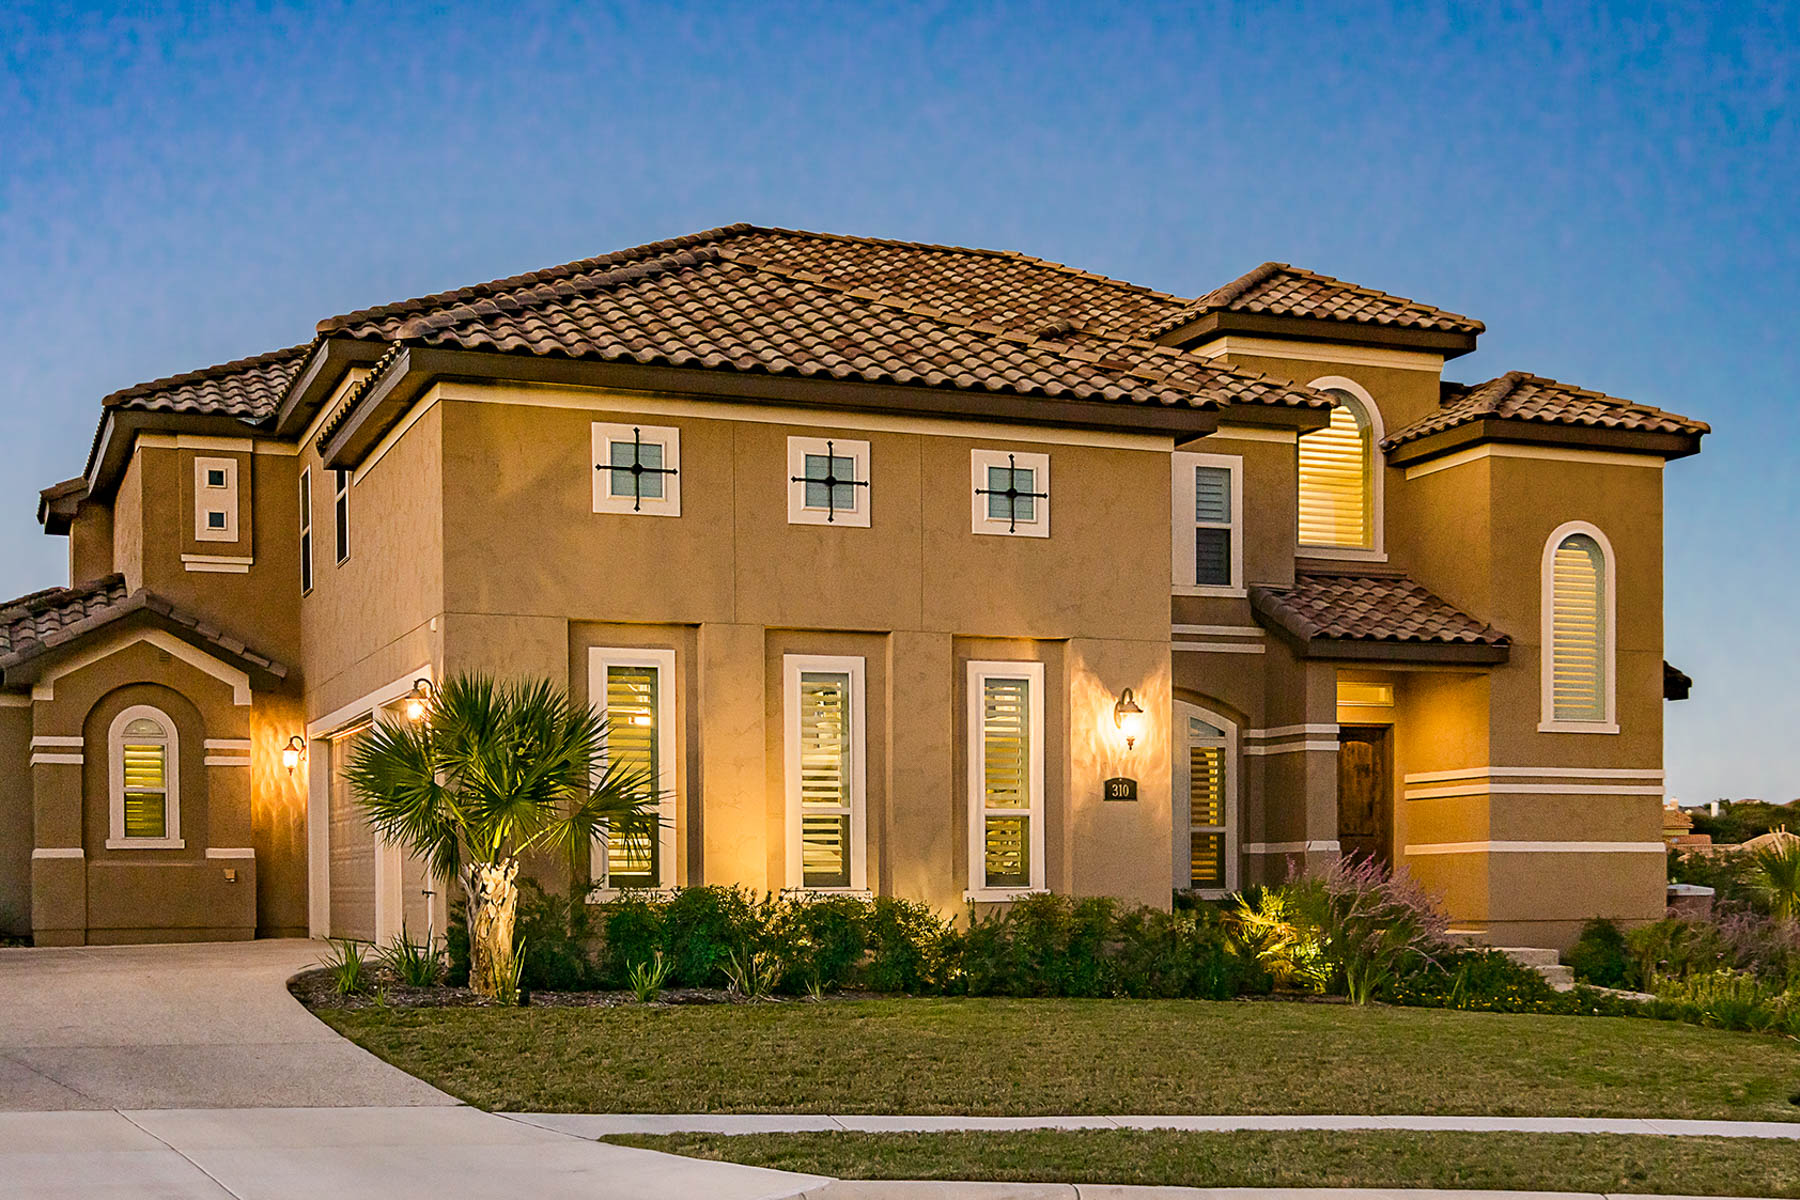 Property For Sale at Stunning Home in Canyon Spring Estates